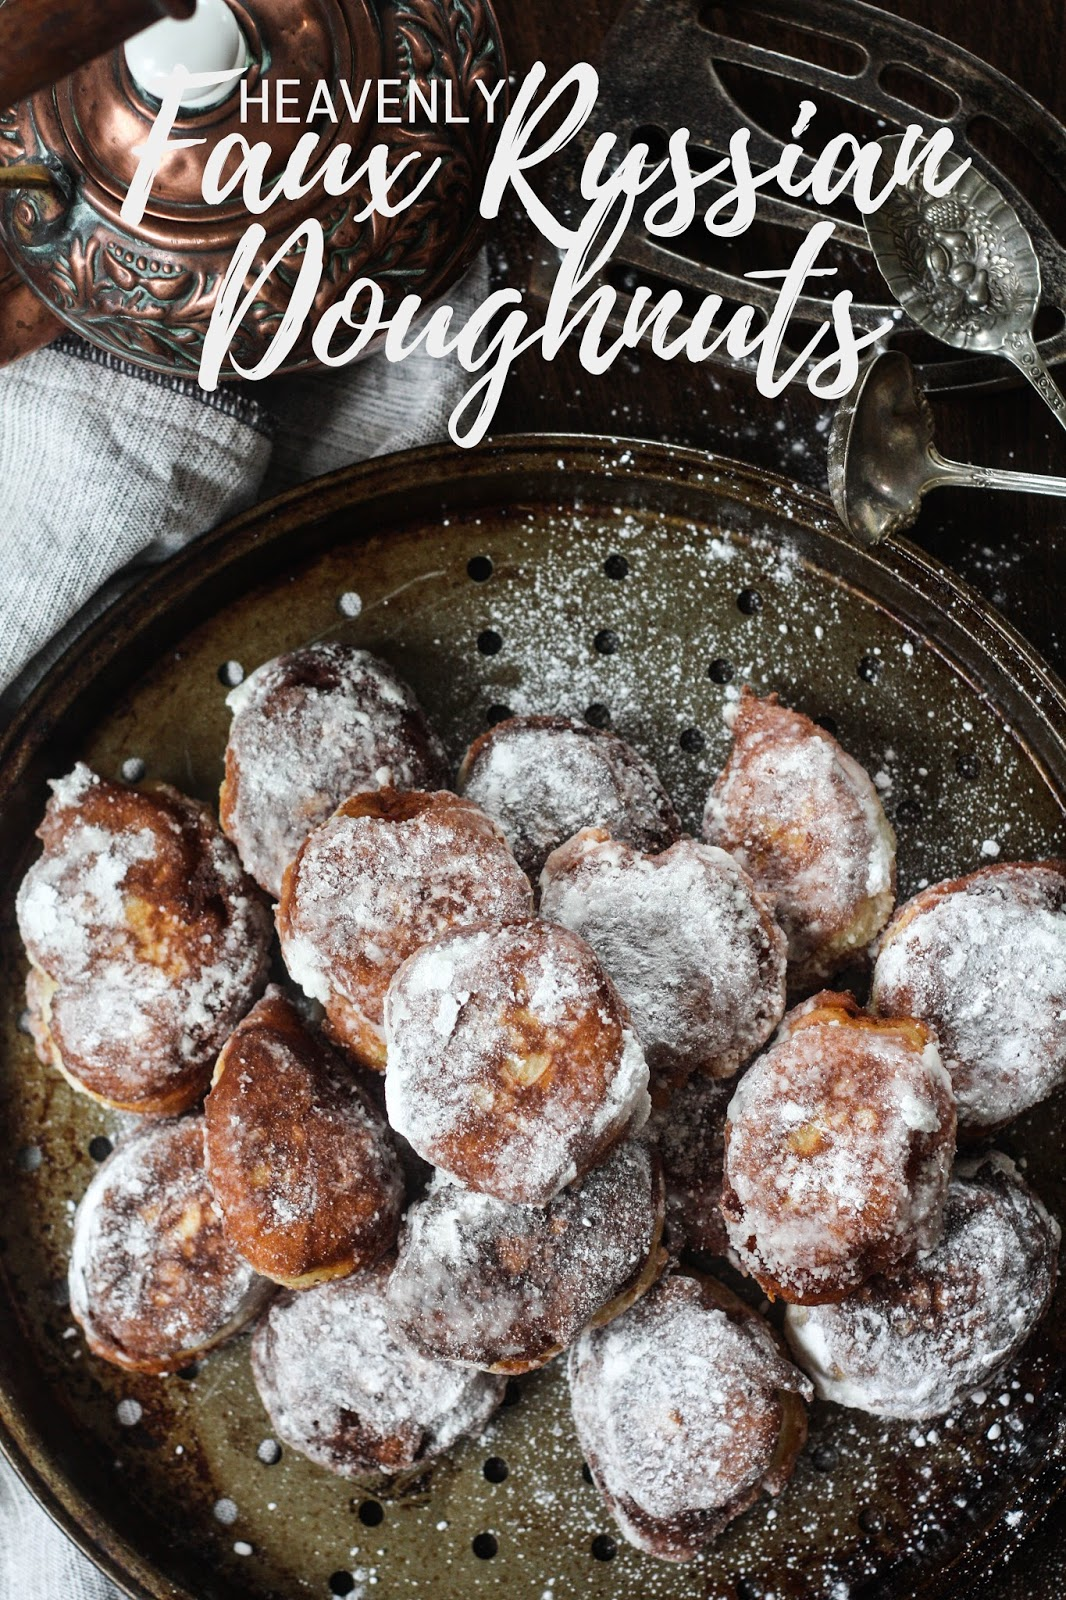 Heavenly faux Russian doughnuts